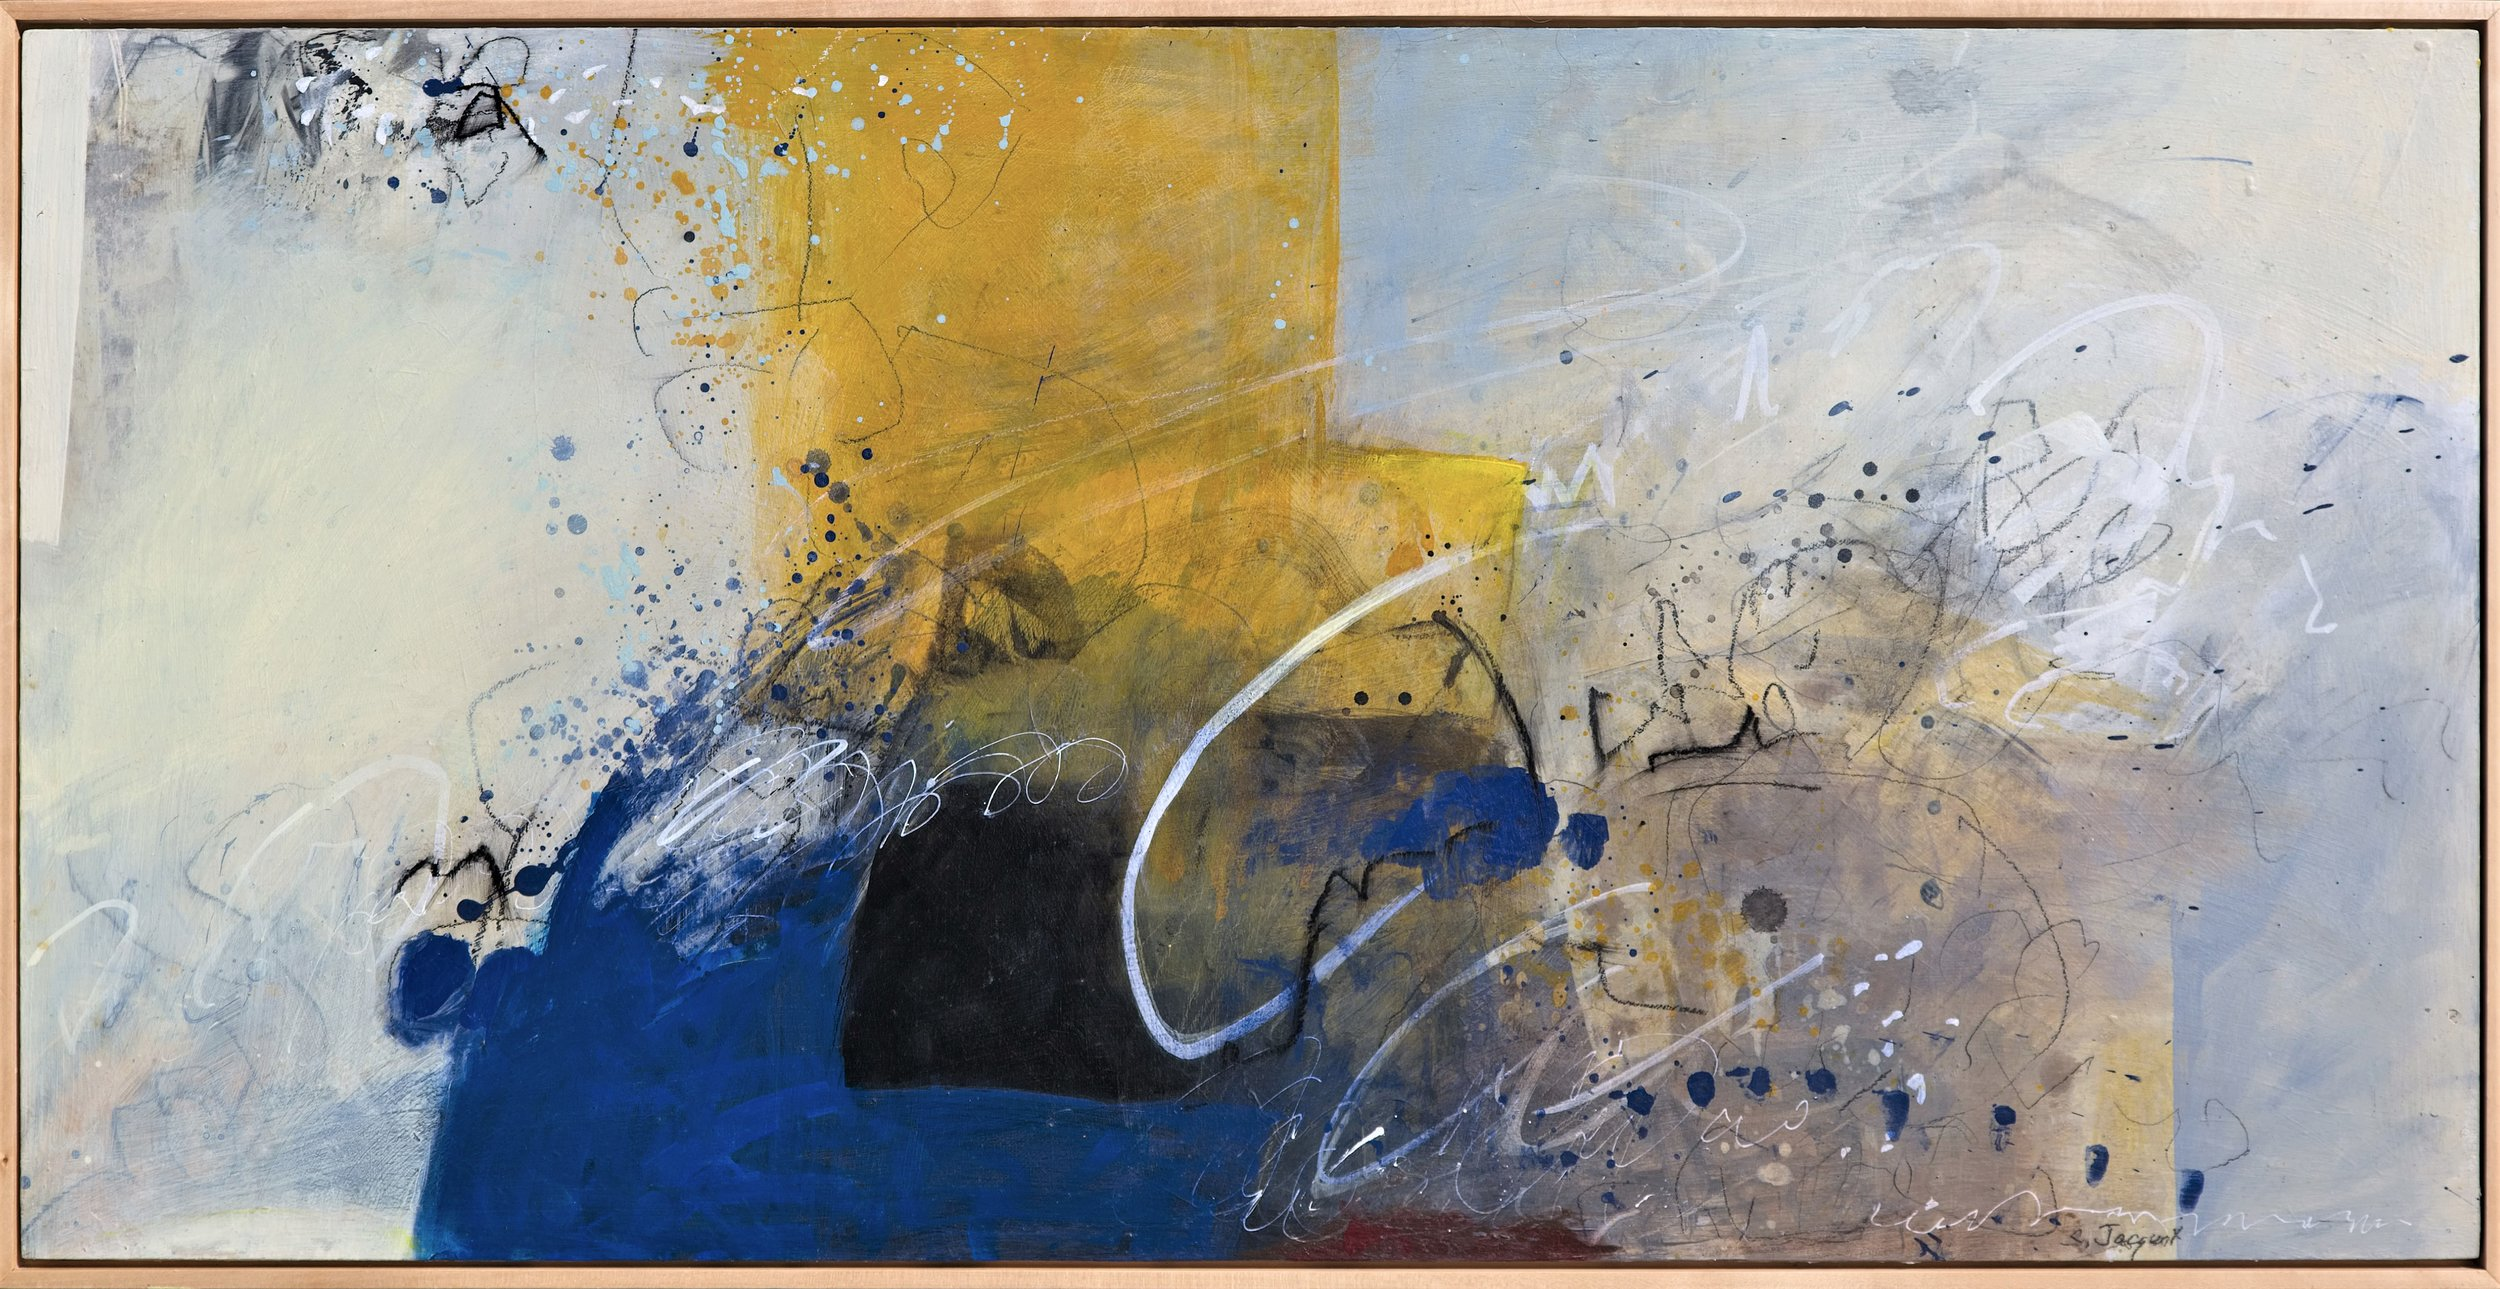 """Winds of fortune blew through Acrylic, graphite, charcoal on wood panel 17LWP101 24"""" x 48"""""""